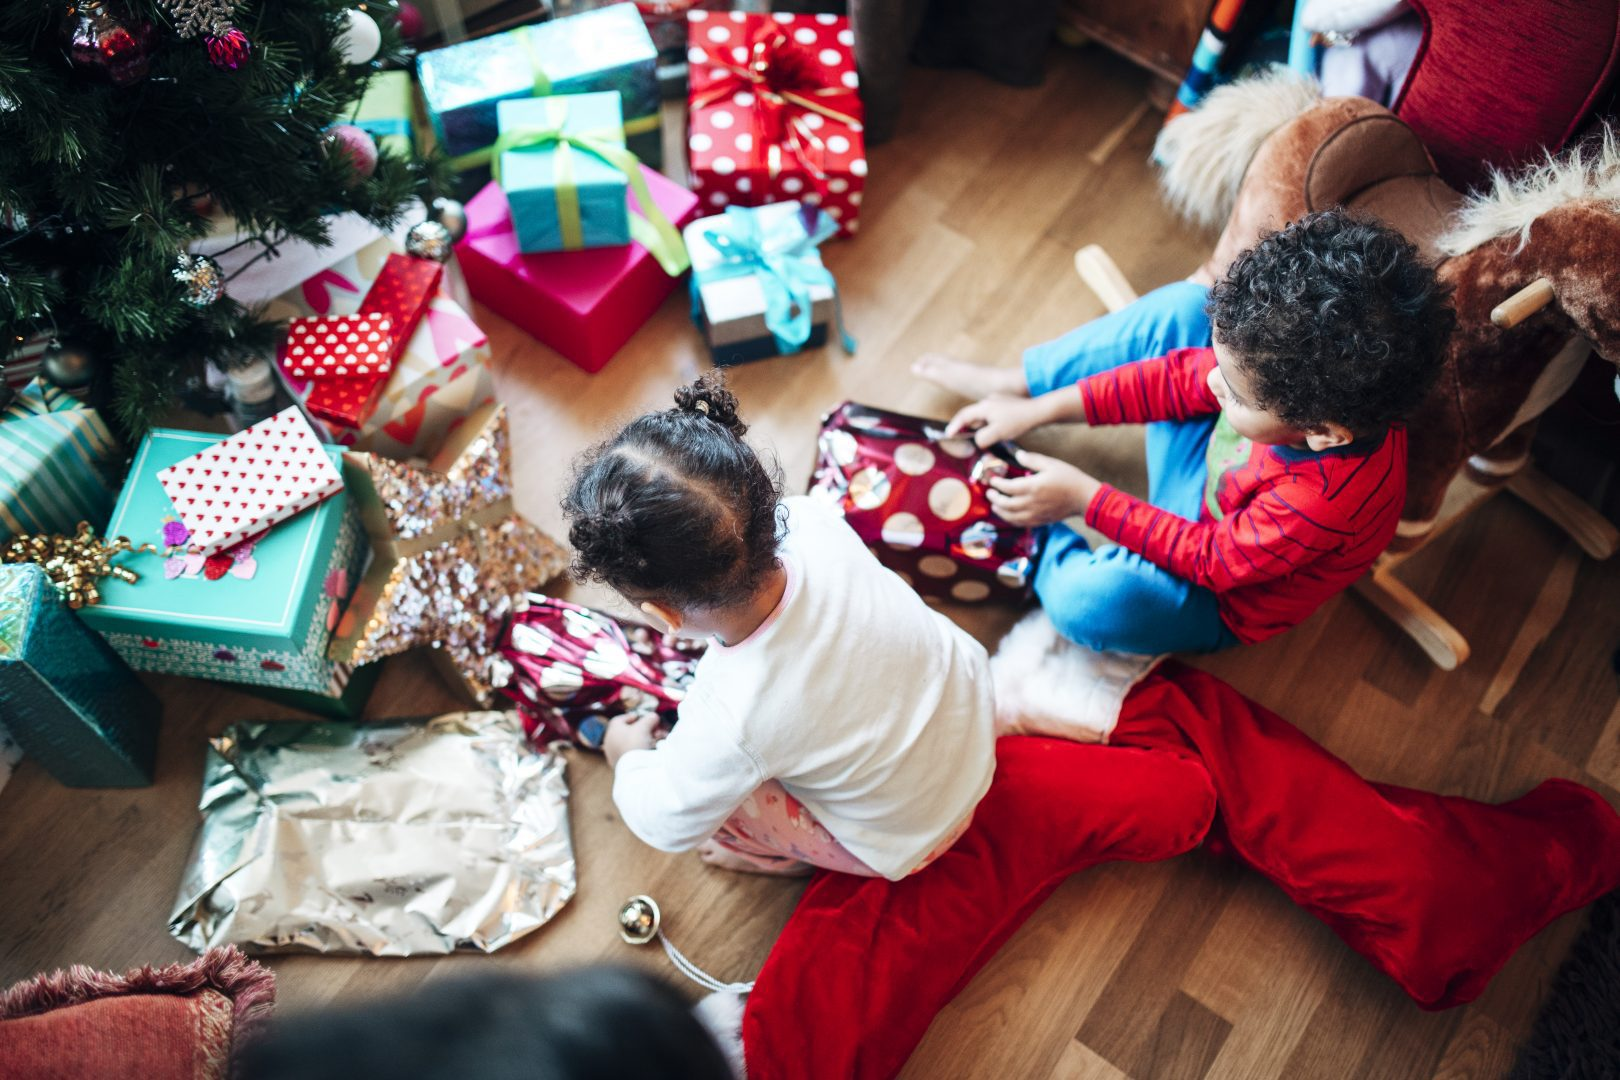 birds eye view of two children sitting on the floor opening colorful presents in front of a christmas tree